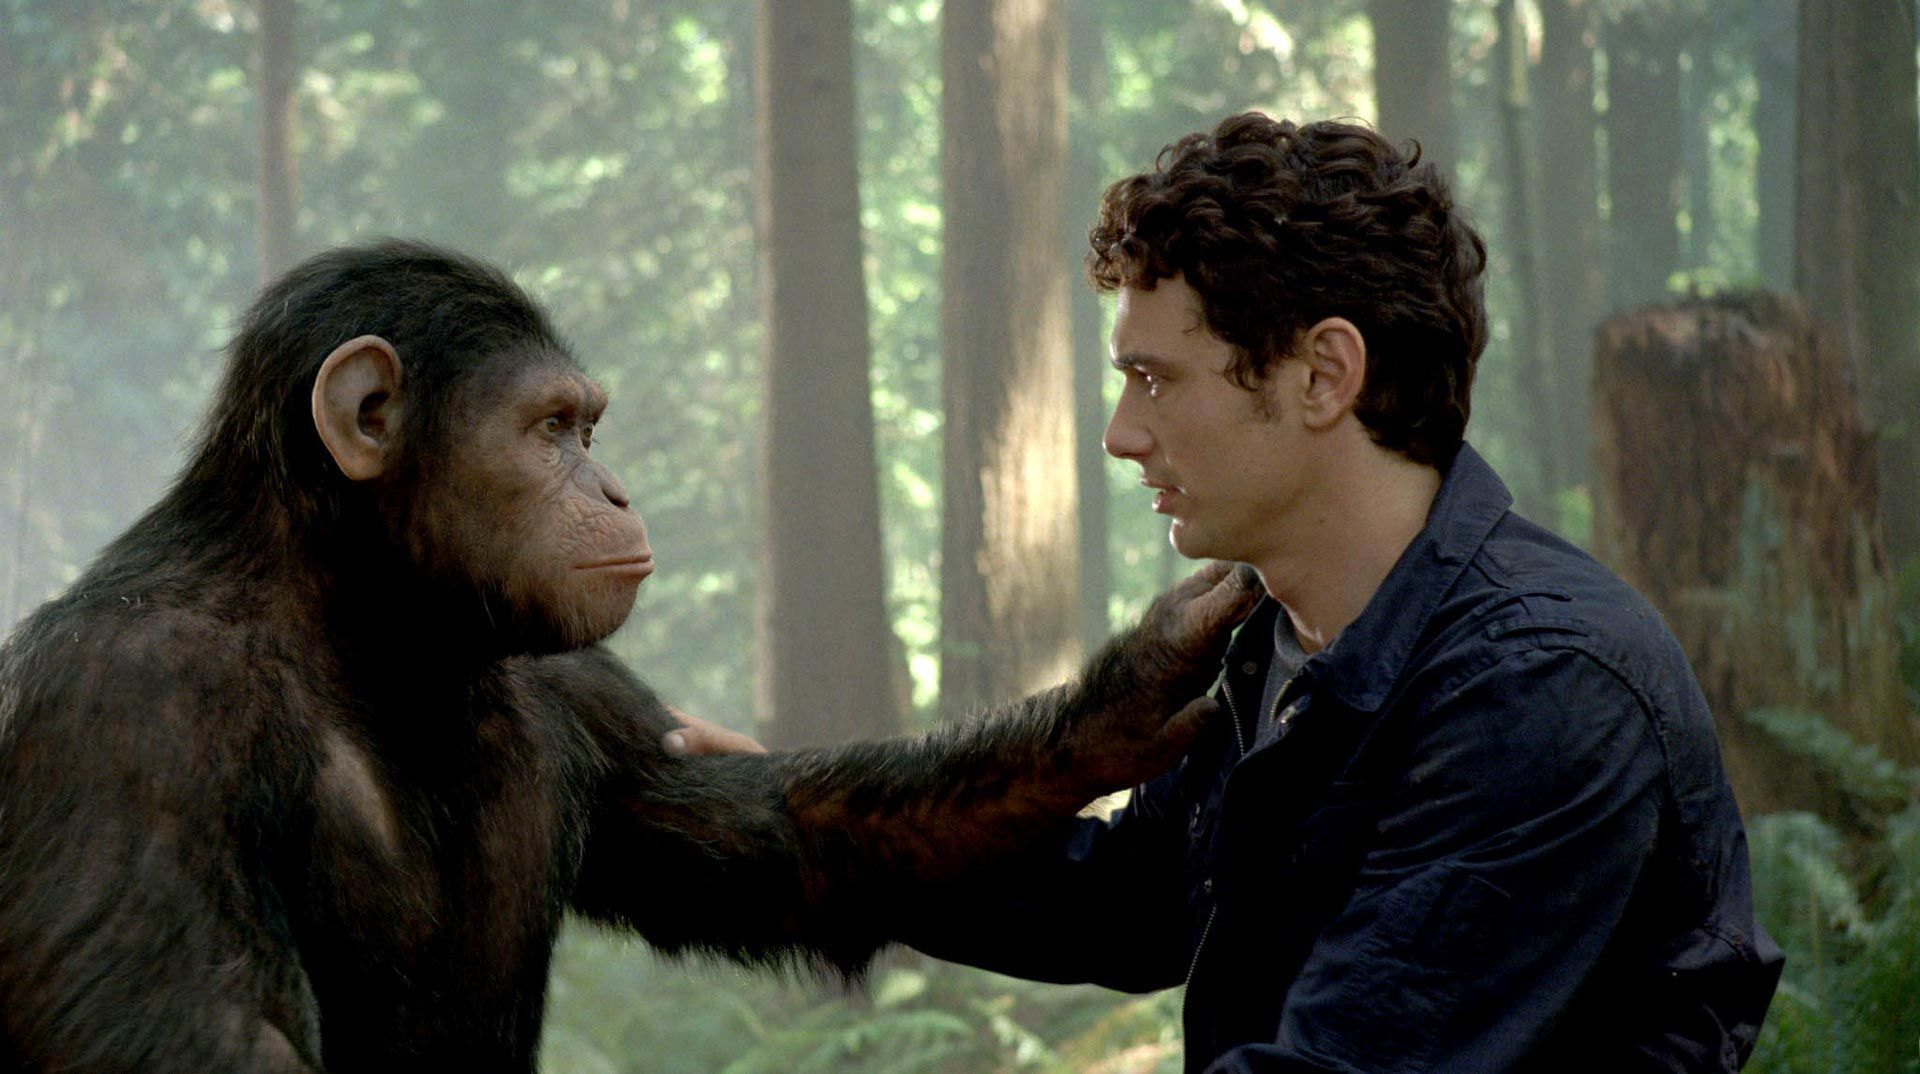 An image from Rise of the Planet of the Apes